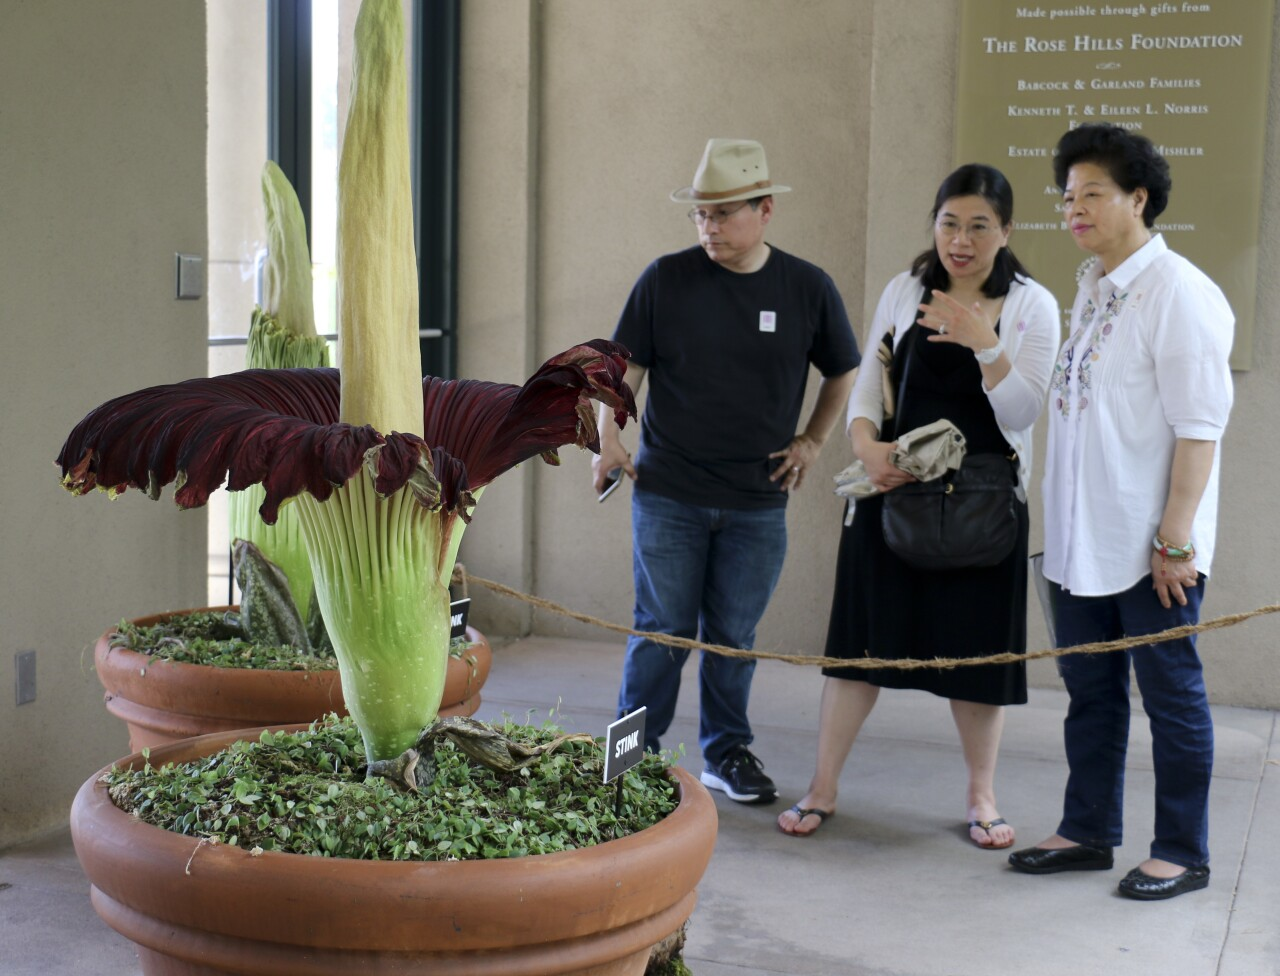 For The Fourth Time In 25 Years, Corpse Flower At